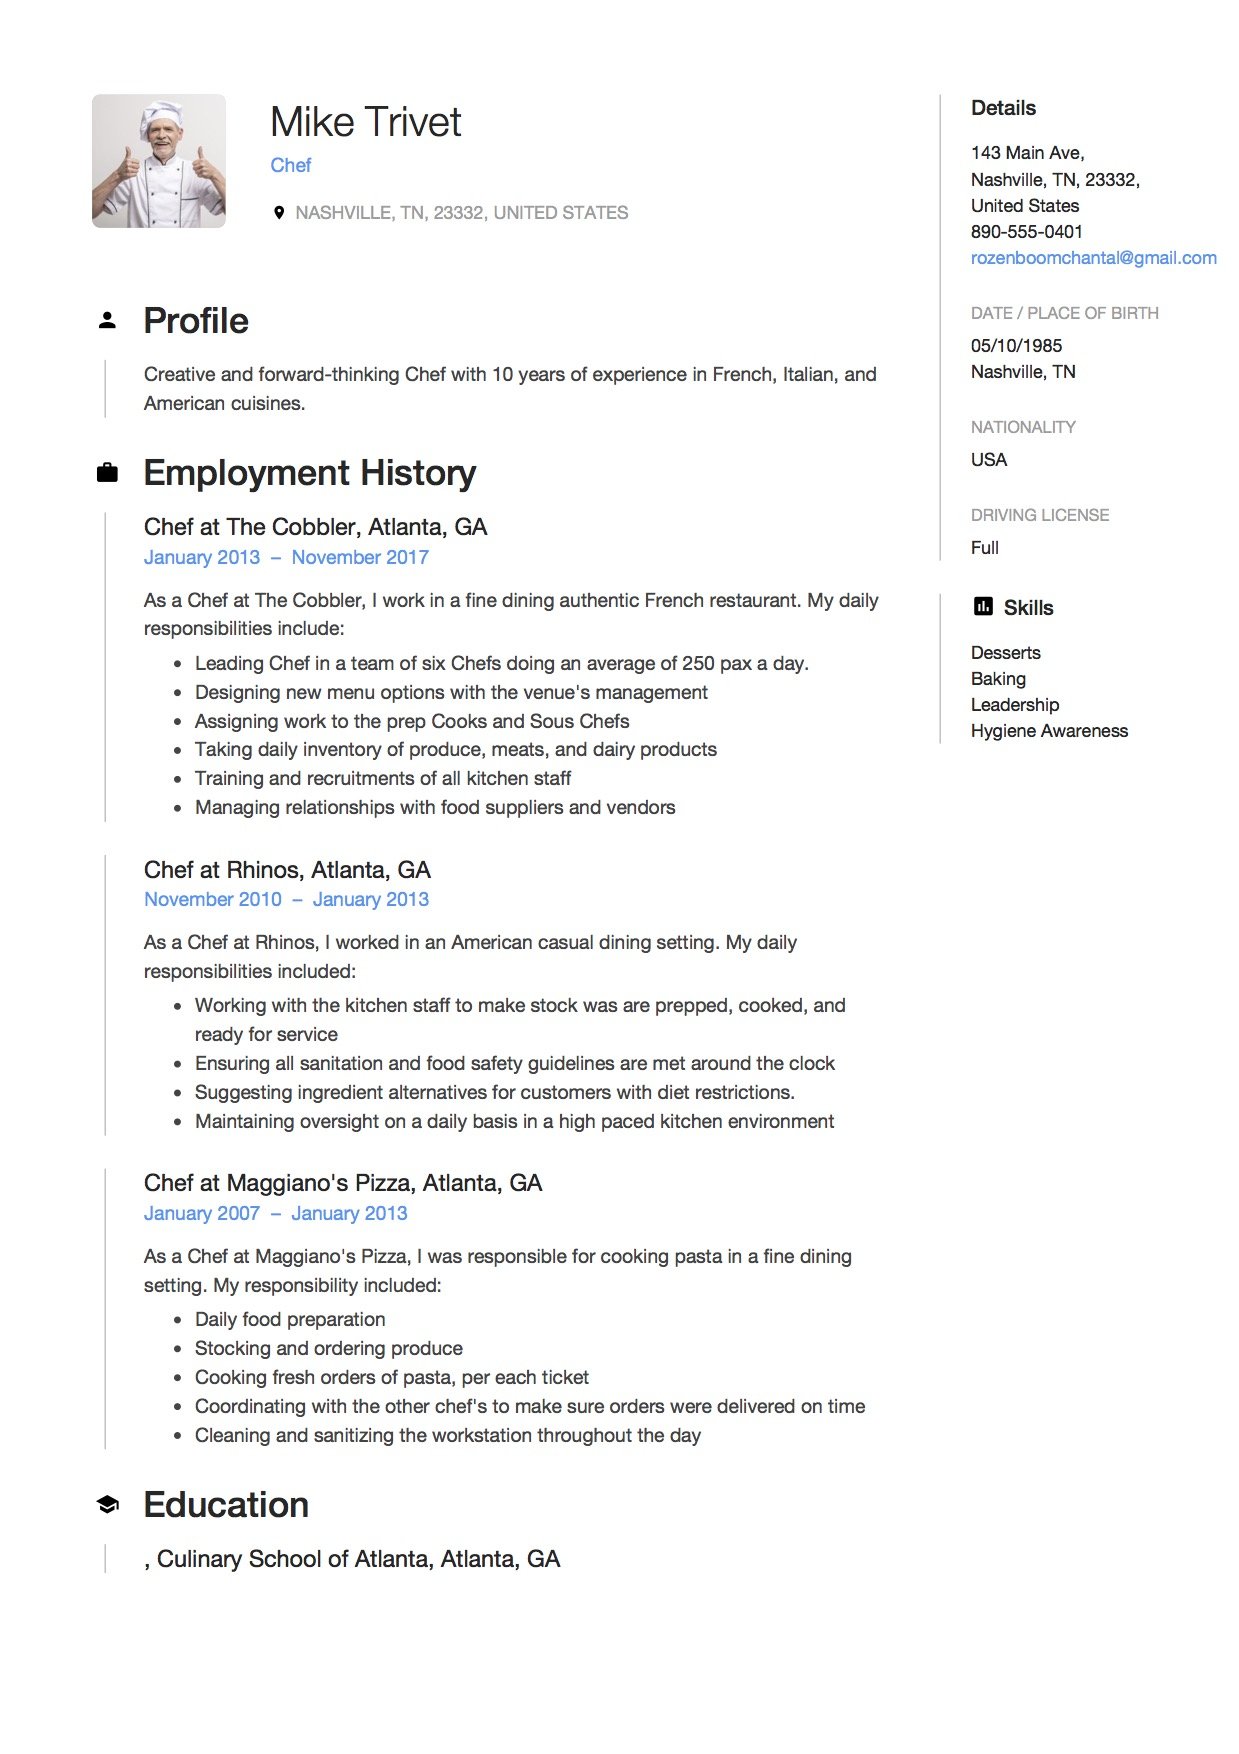 chef resume writing guide free templates pdf responsibilities for mike trivet role of Resume Cook Responsibilities For Resume